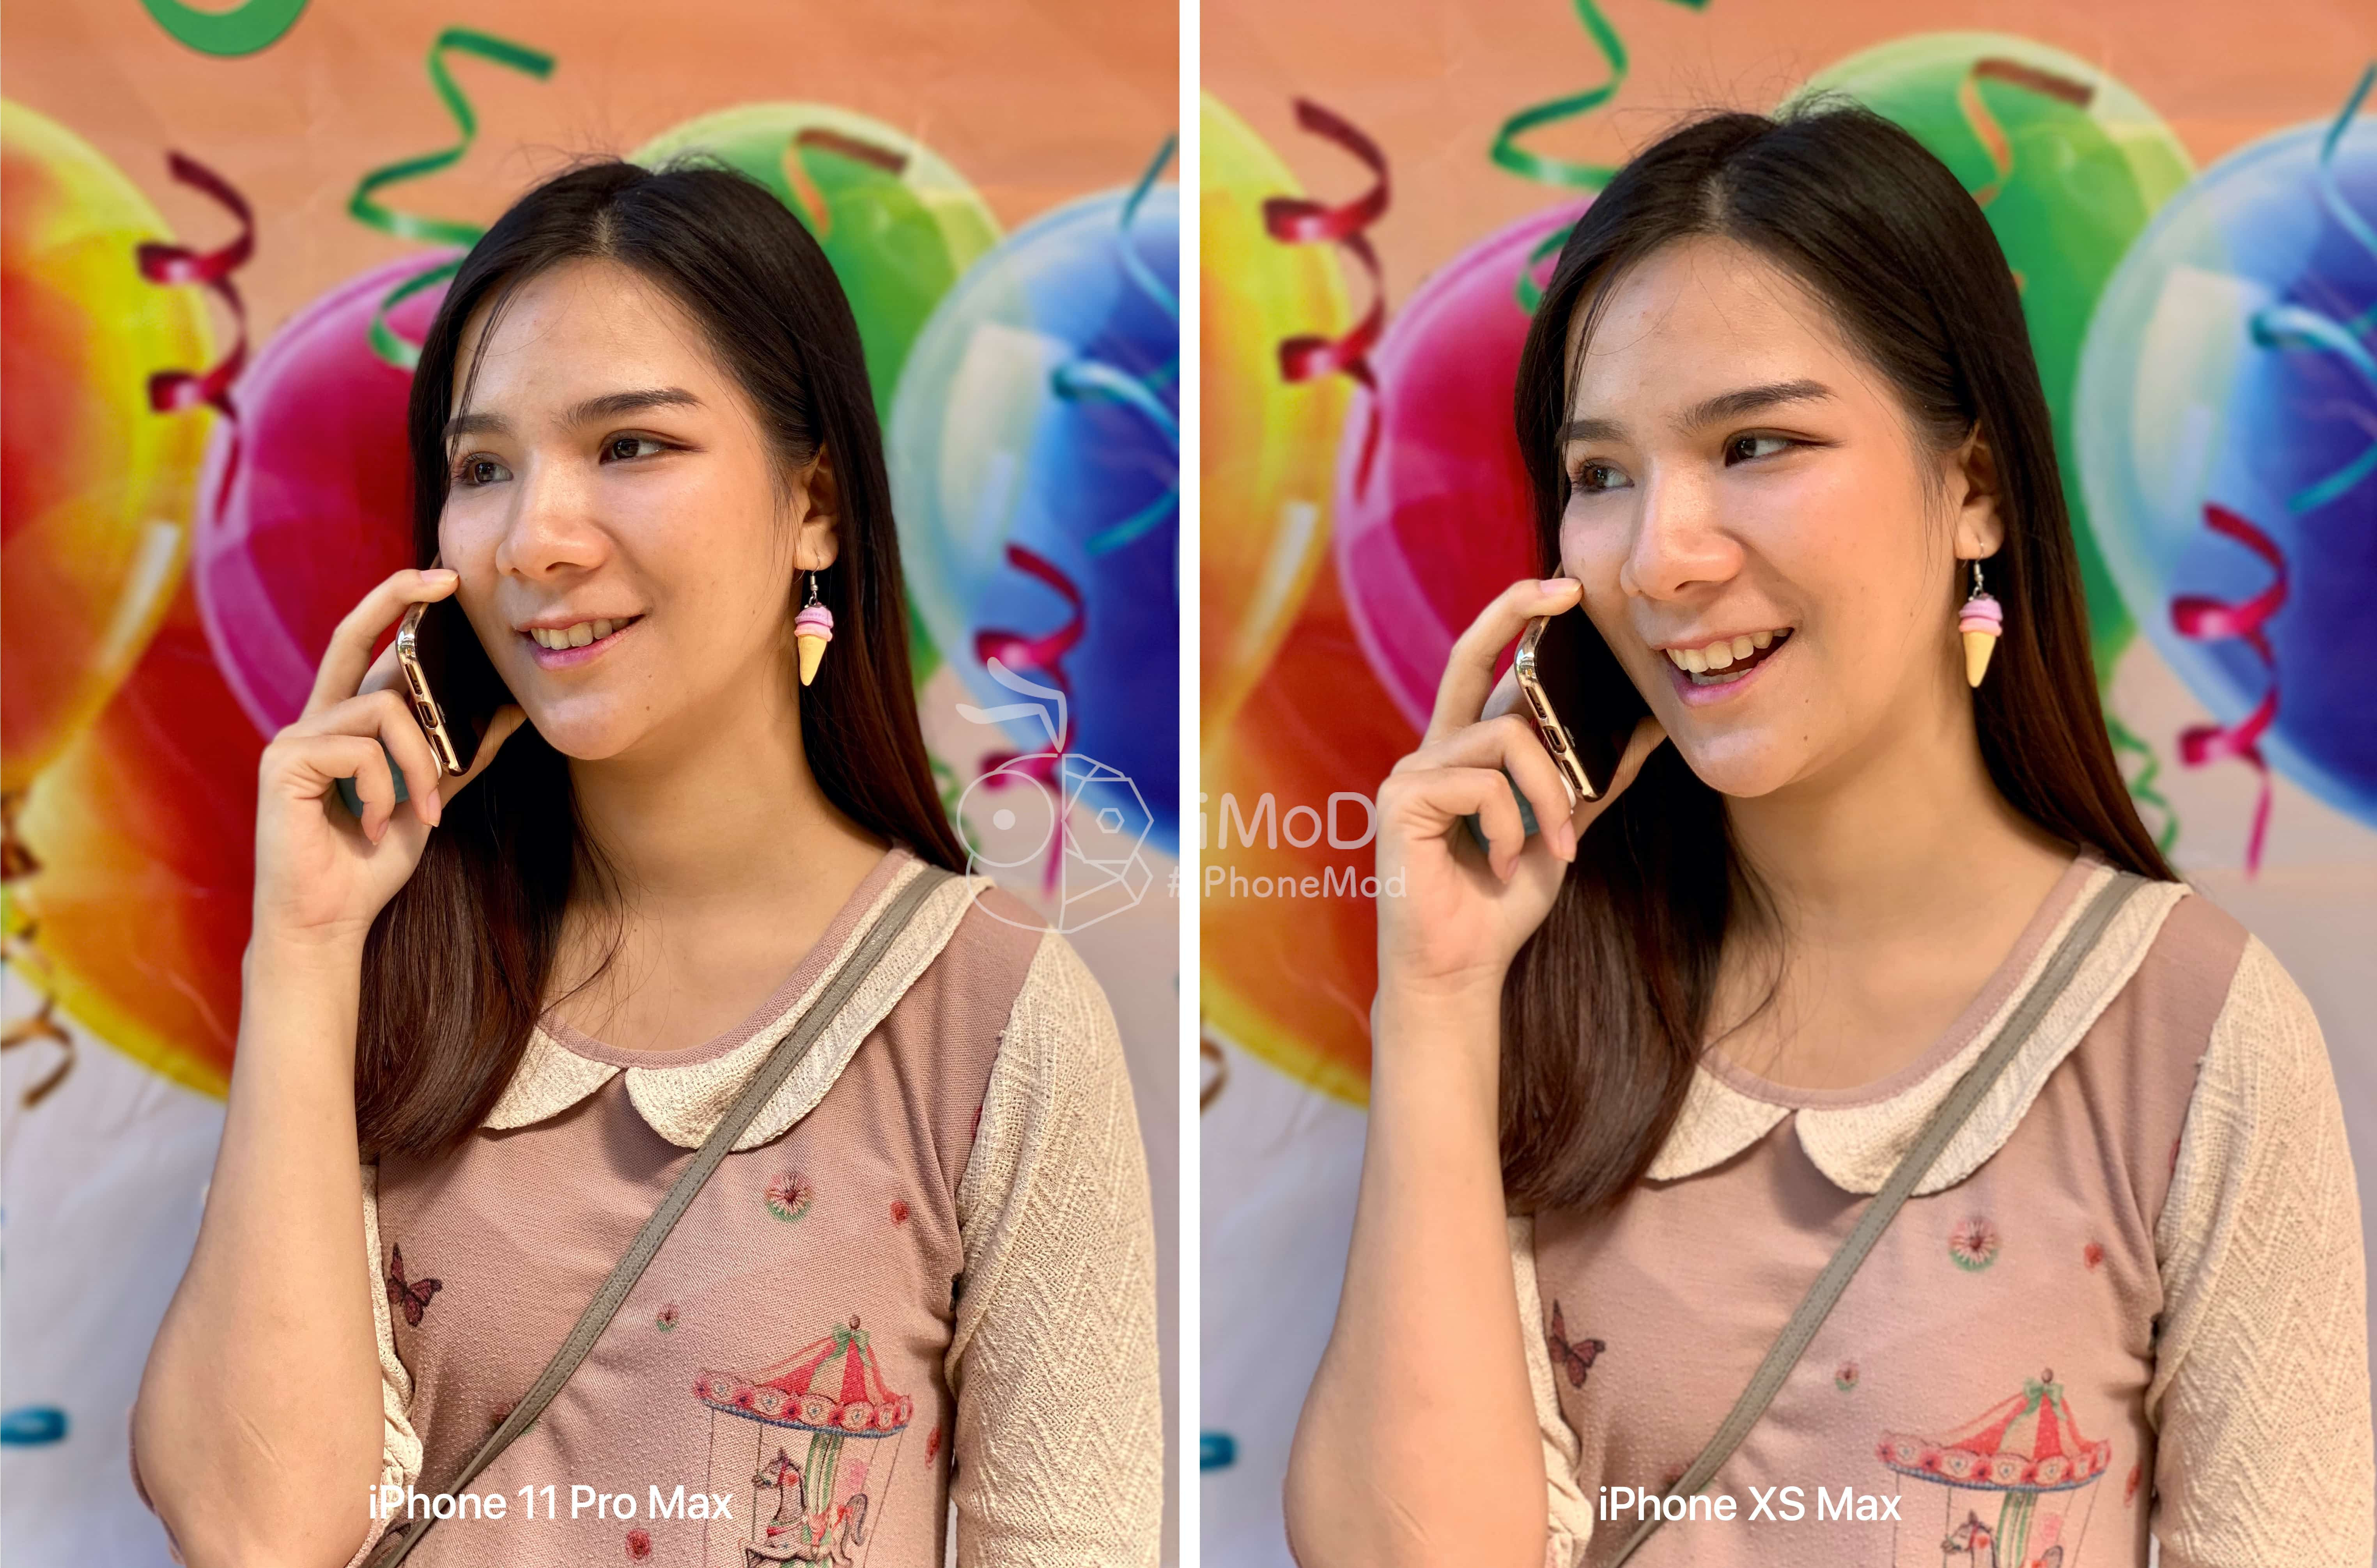 Iphone 11 Pro Max And Iphone Xs Max Portrait Compare Img 6